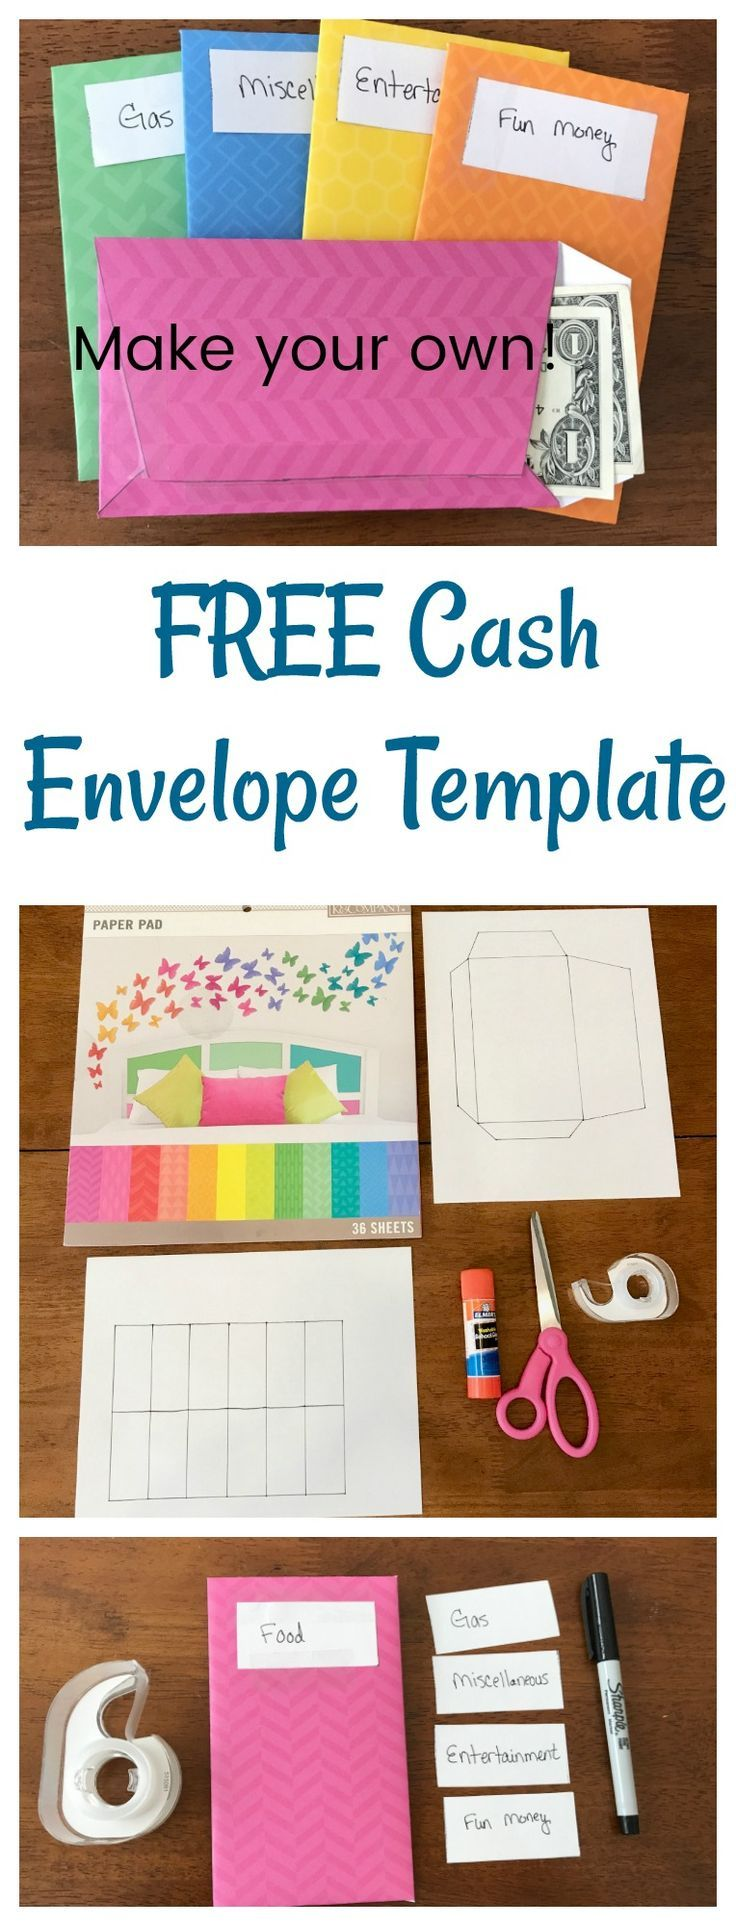 Learn how to make your own cash envelopes with FREE